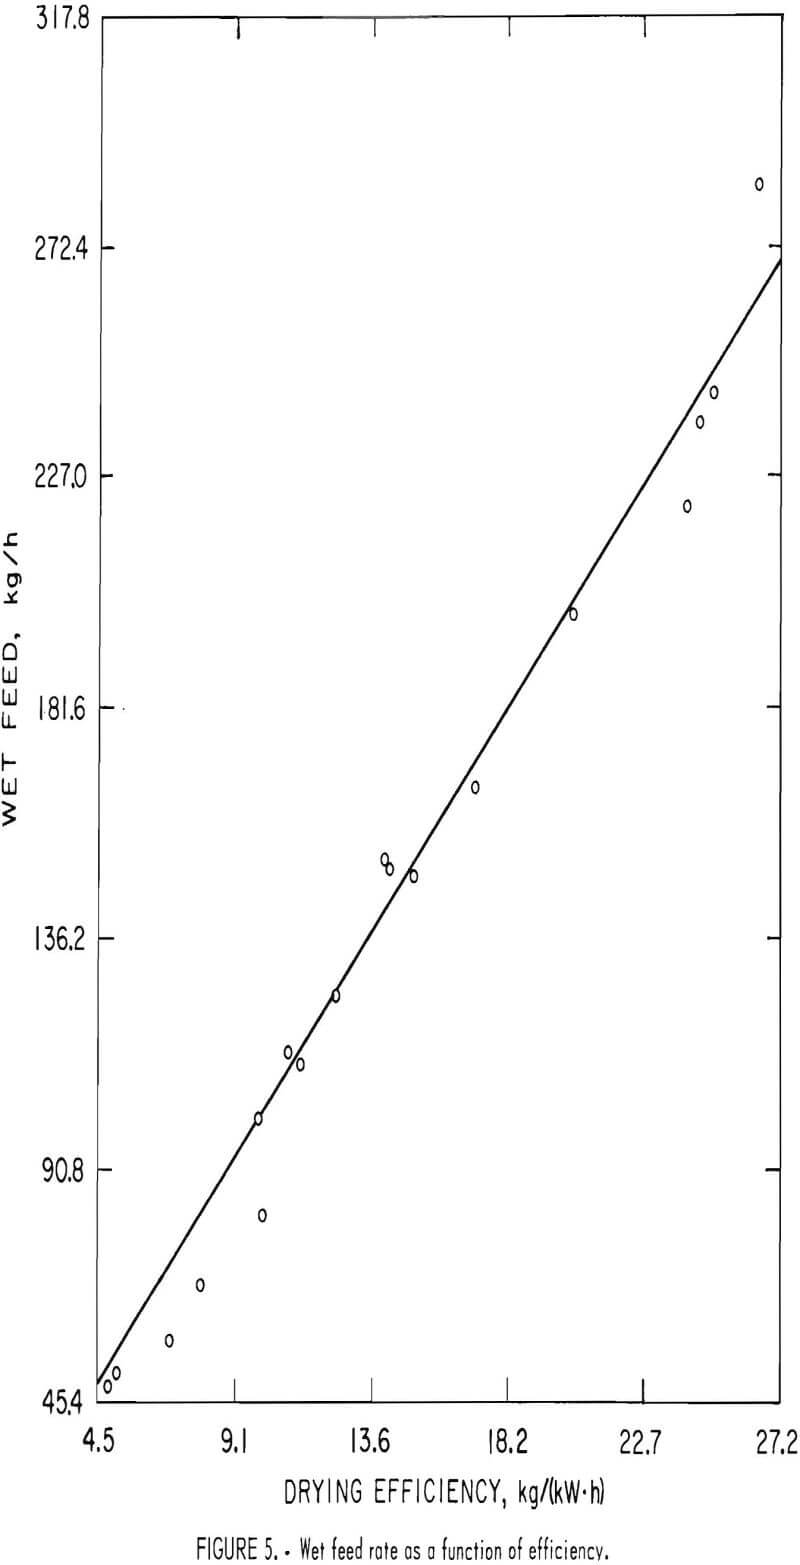 microwave-drying-fine-coal wet feed rate as a function of efficiency